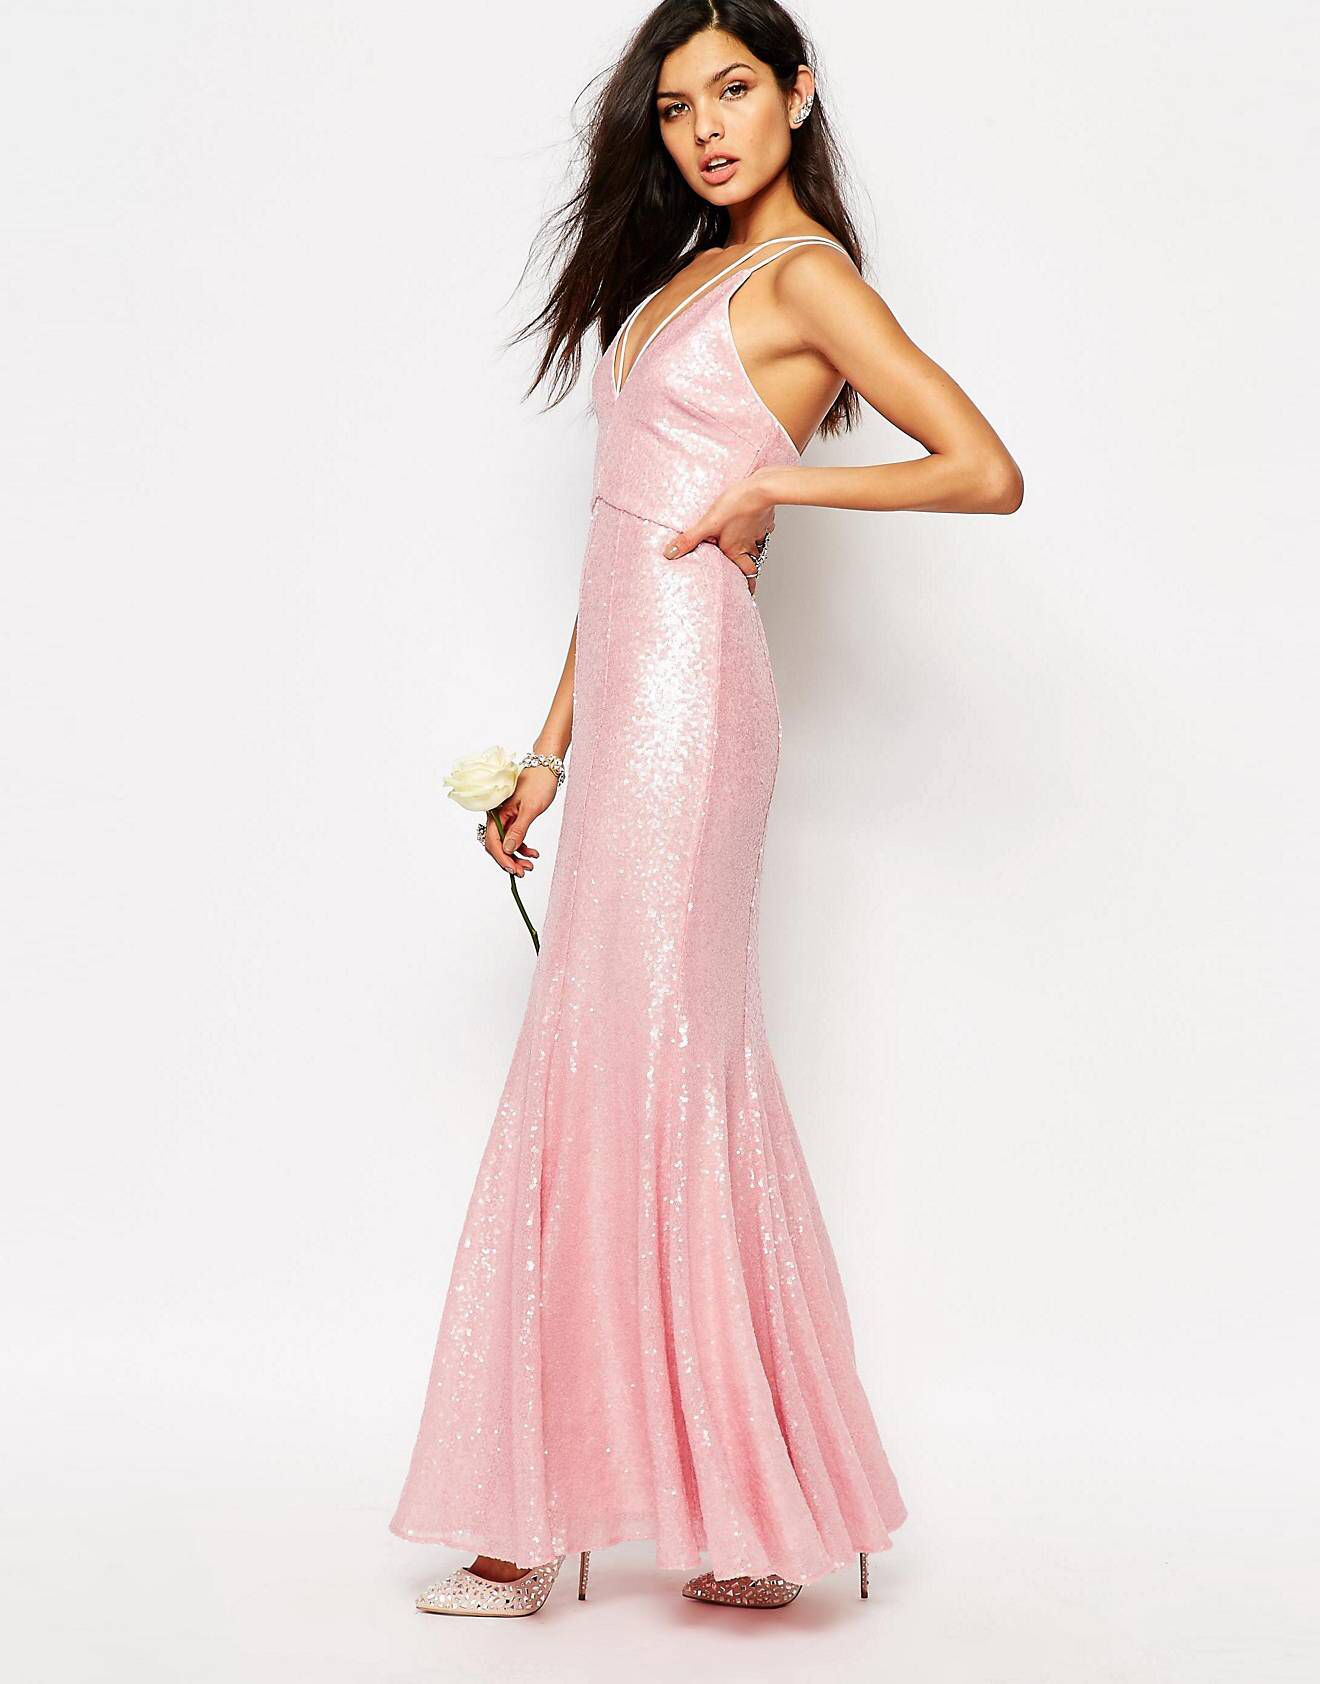 Pink cocktail dress for wedding  LOVE this from ASOS  Kimus Wedding  Pinterest  Weddings